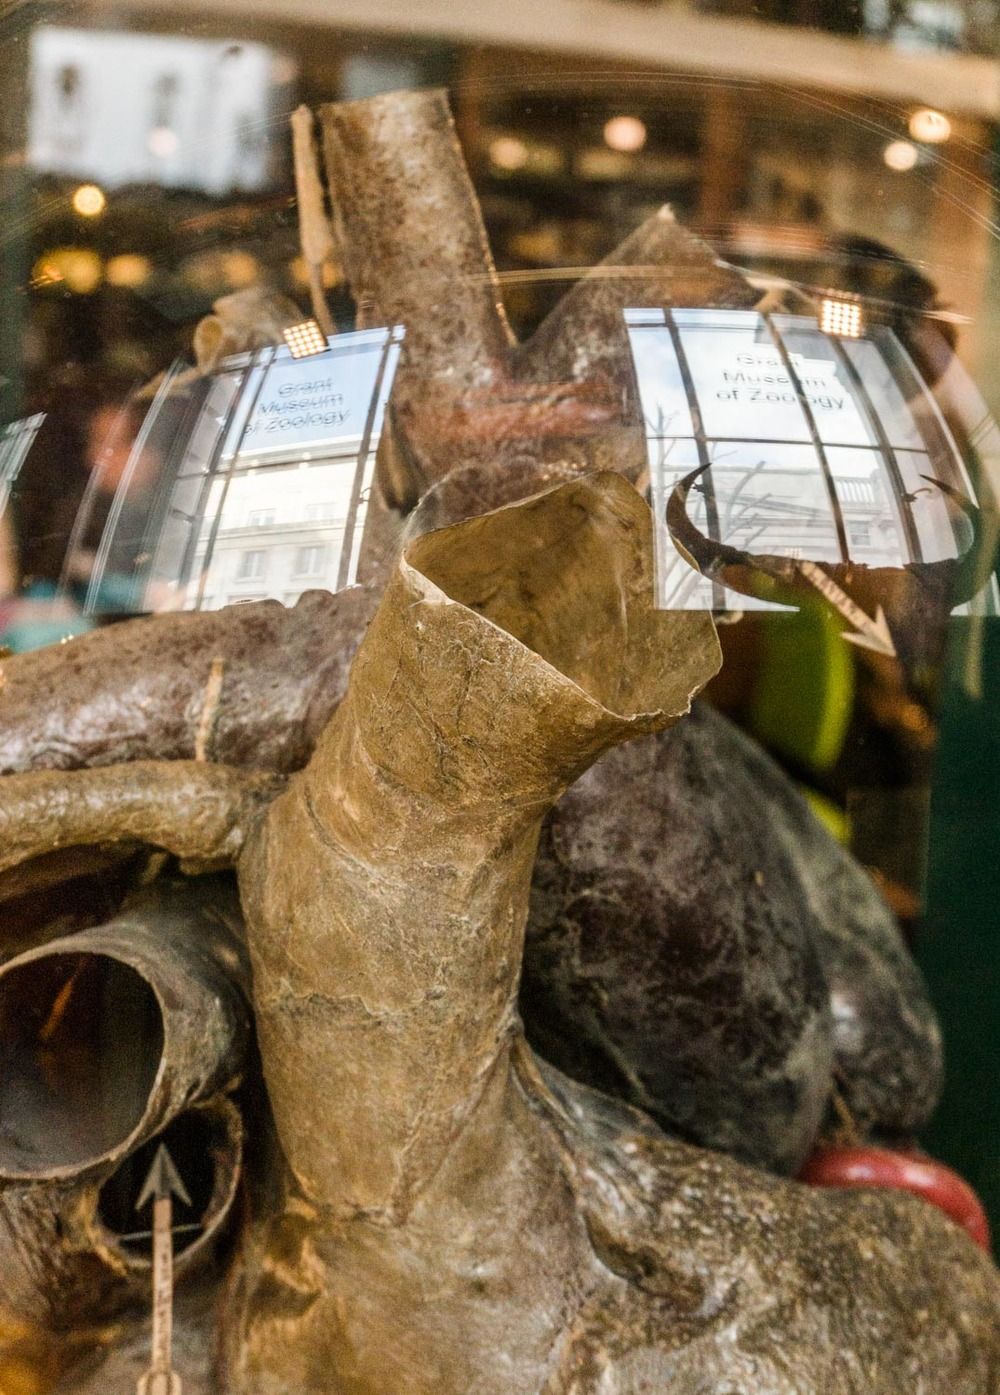 An elephant heart, and interesting reflections